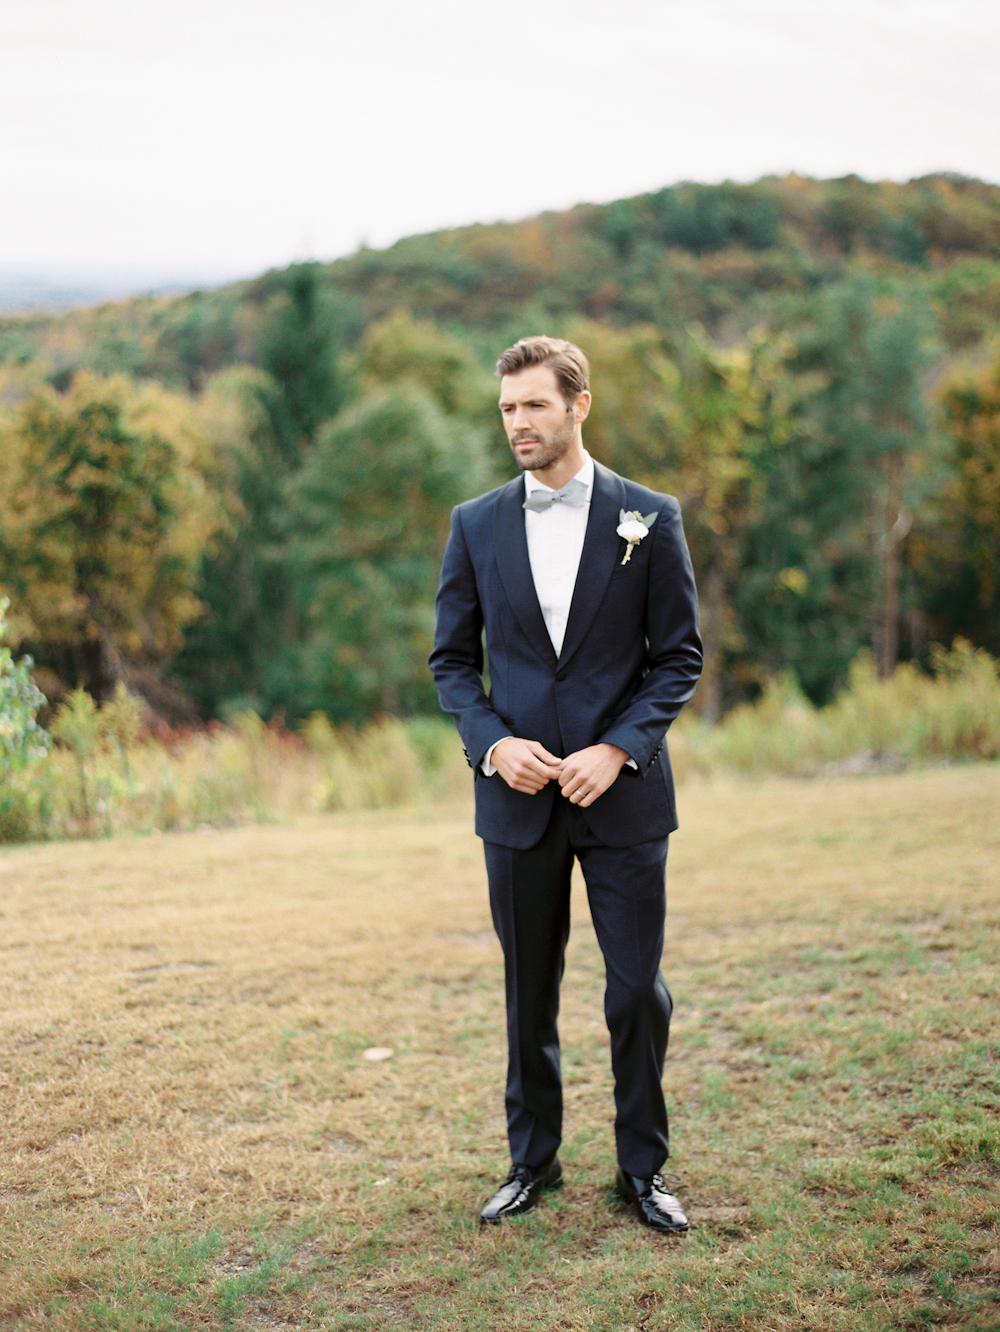 Fall Wedding & Camping Editorial 0023.jpg